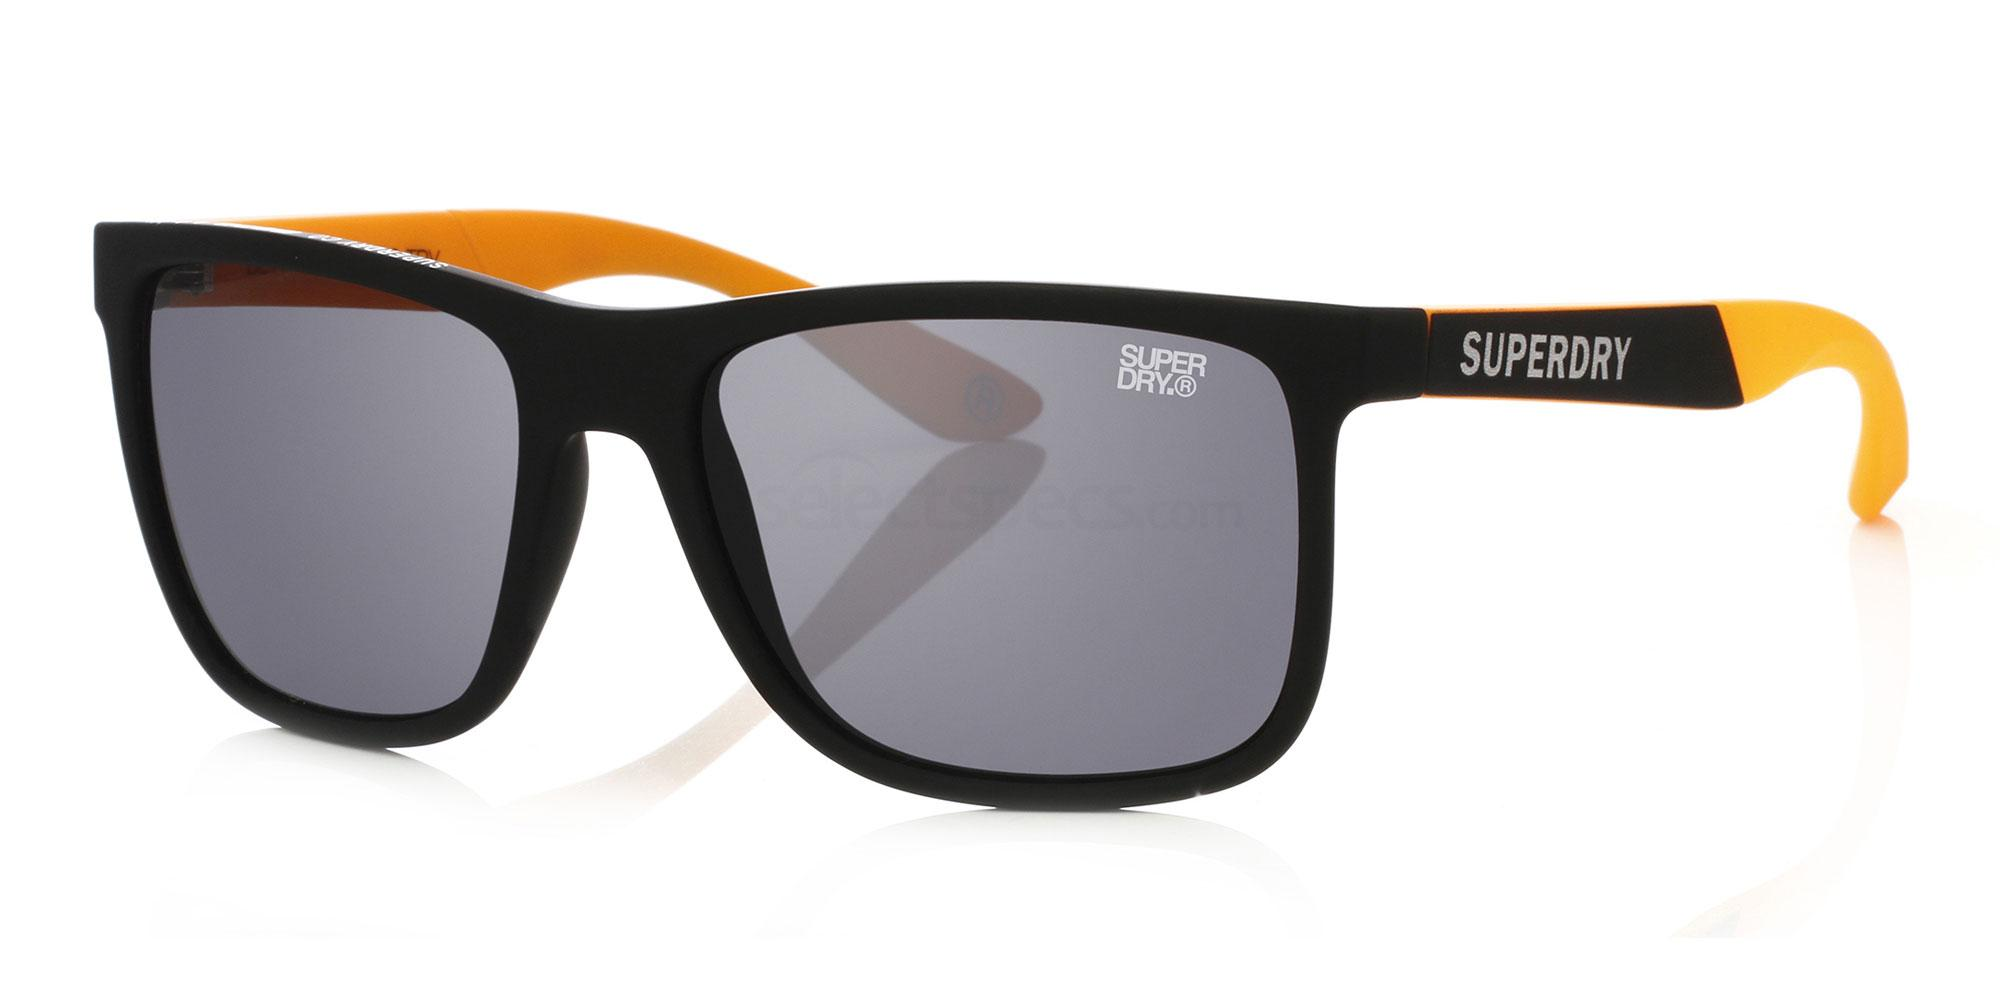 Superdry Runner 104 56 matte black orange / grey 03esadZH